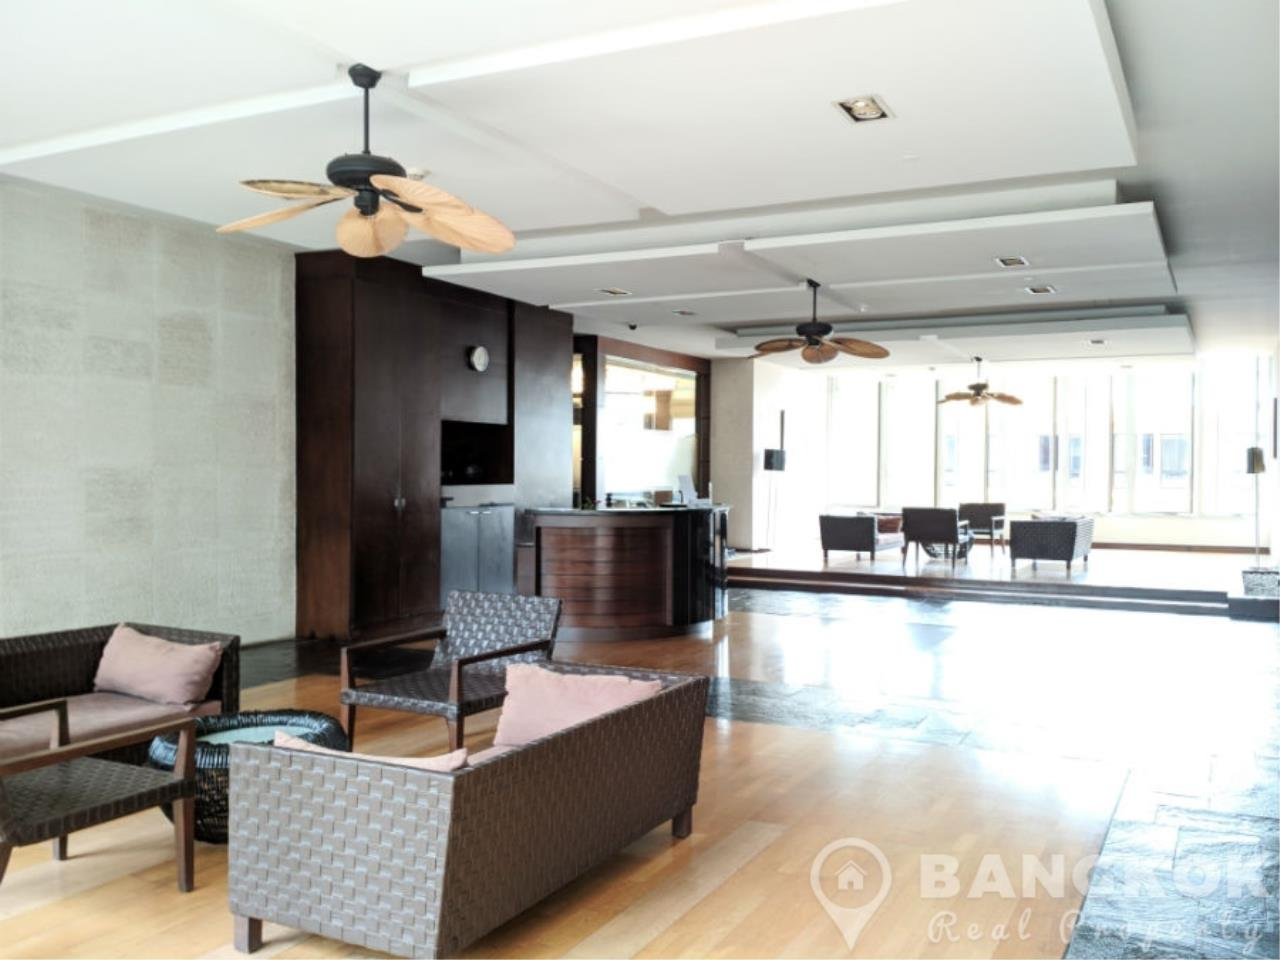 Bangkok Real Property Agency's Athenee Residence | Spacious Modern 2 Bed 2 Bath with Great City Views 22